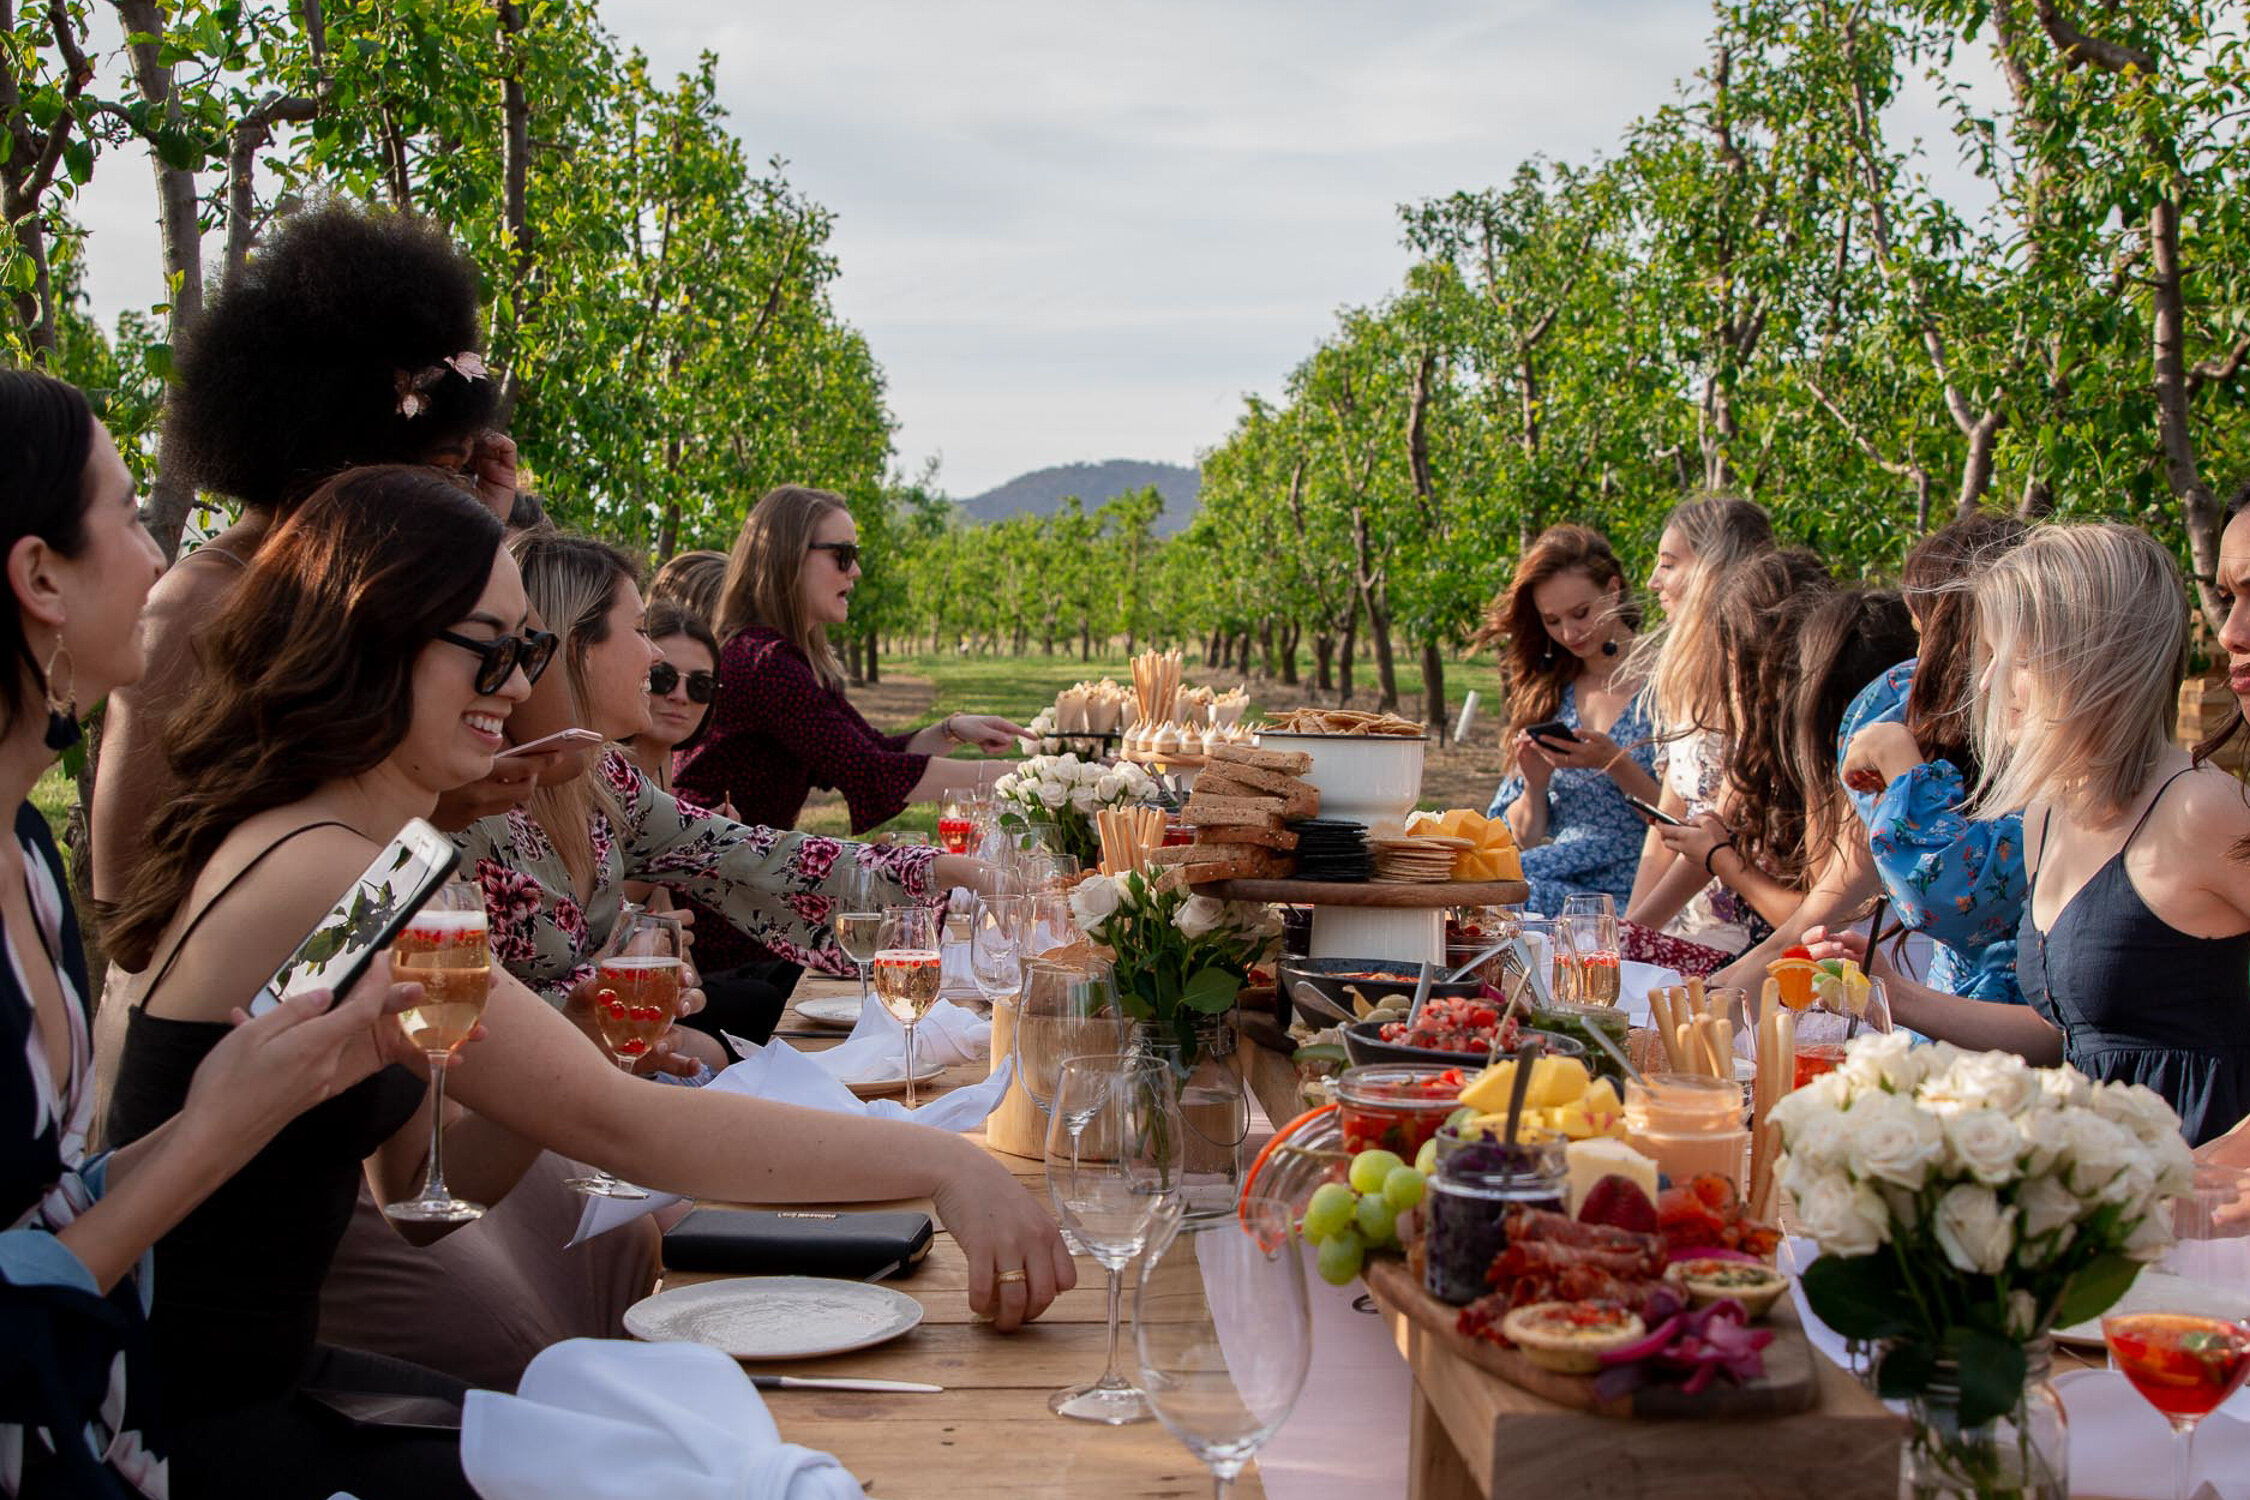 Examples only of setup and food above. This experience may be in either the olive grove or orchard.